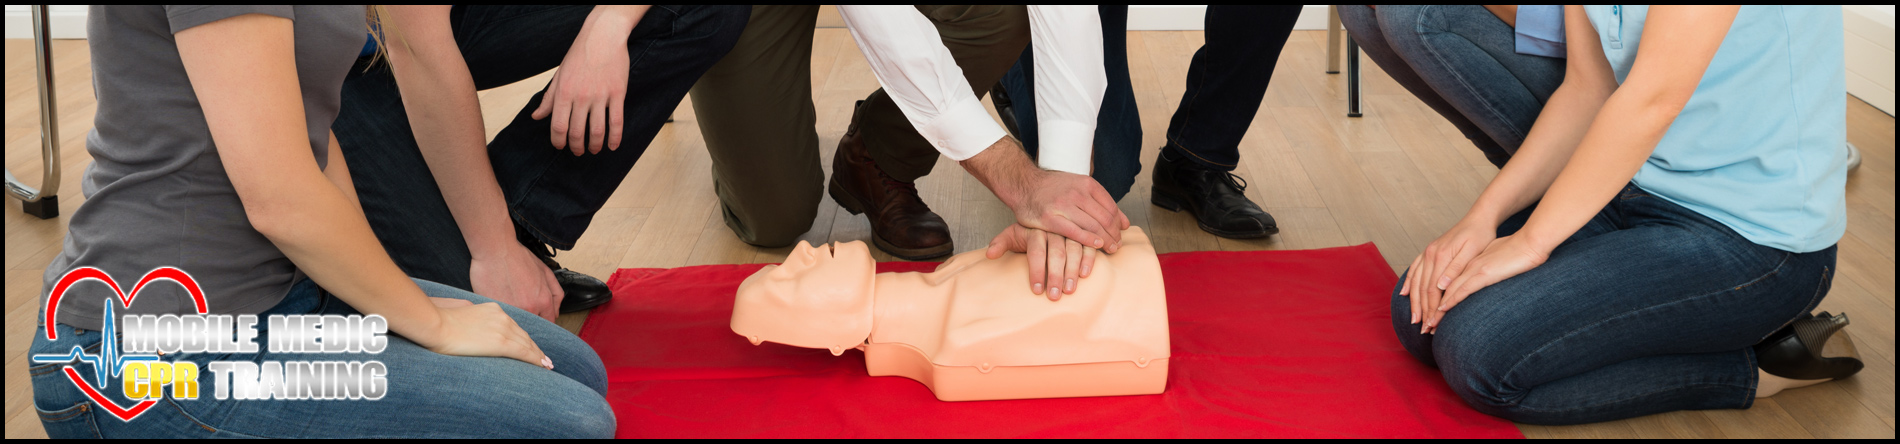 Mobile Medic Cpr Training Is A Mobile First Aid Training Company In